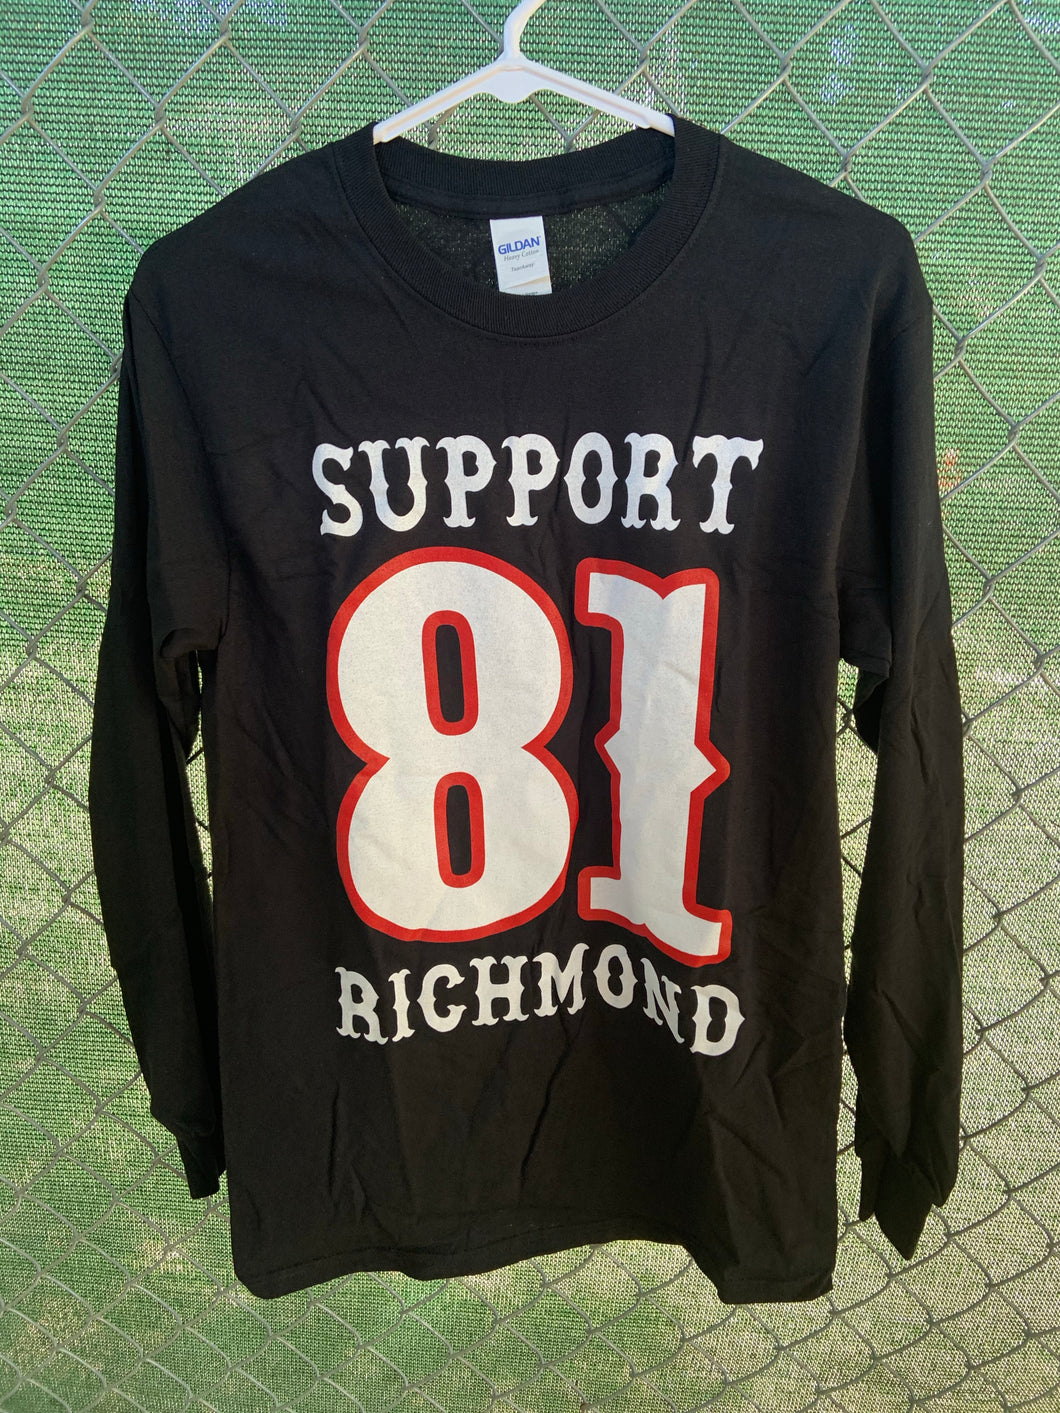 Men's Long sleeve black shirt with big support richmond on front